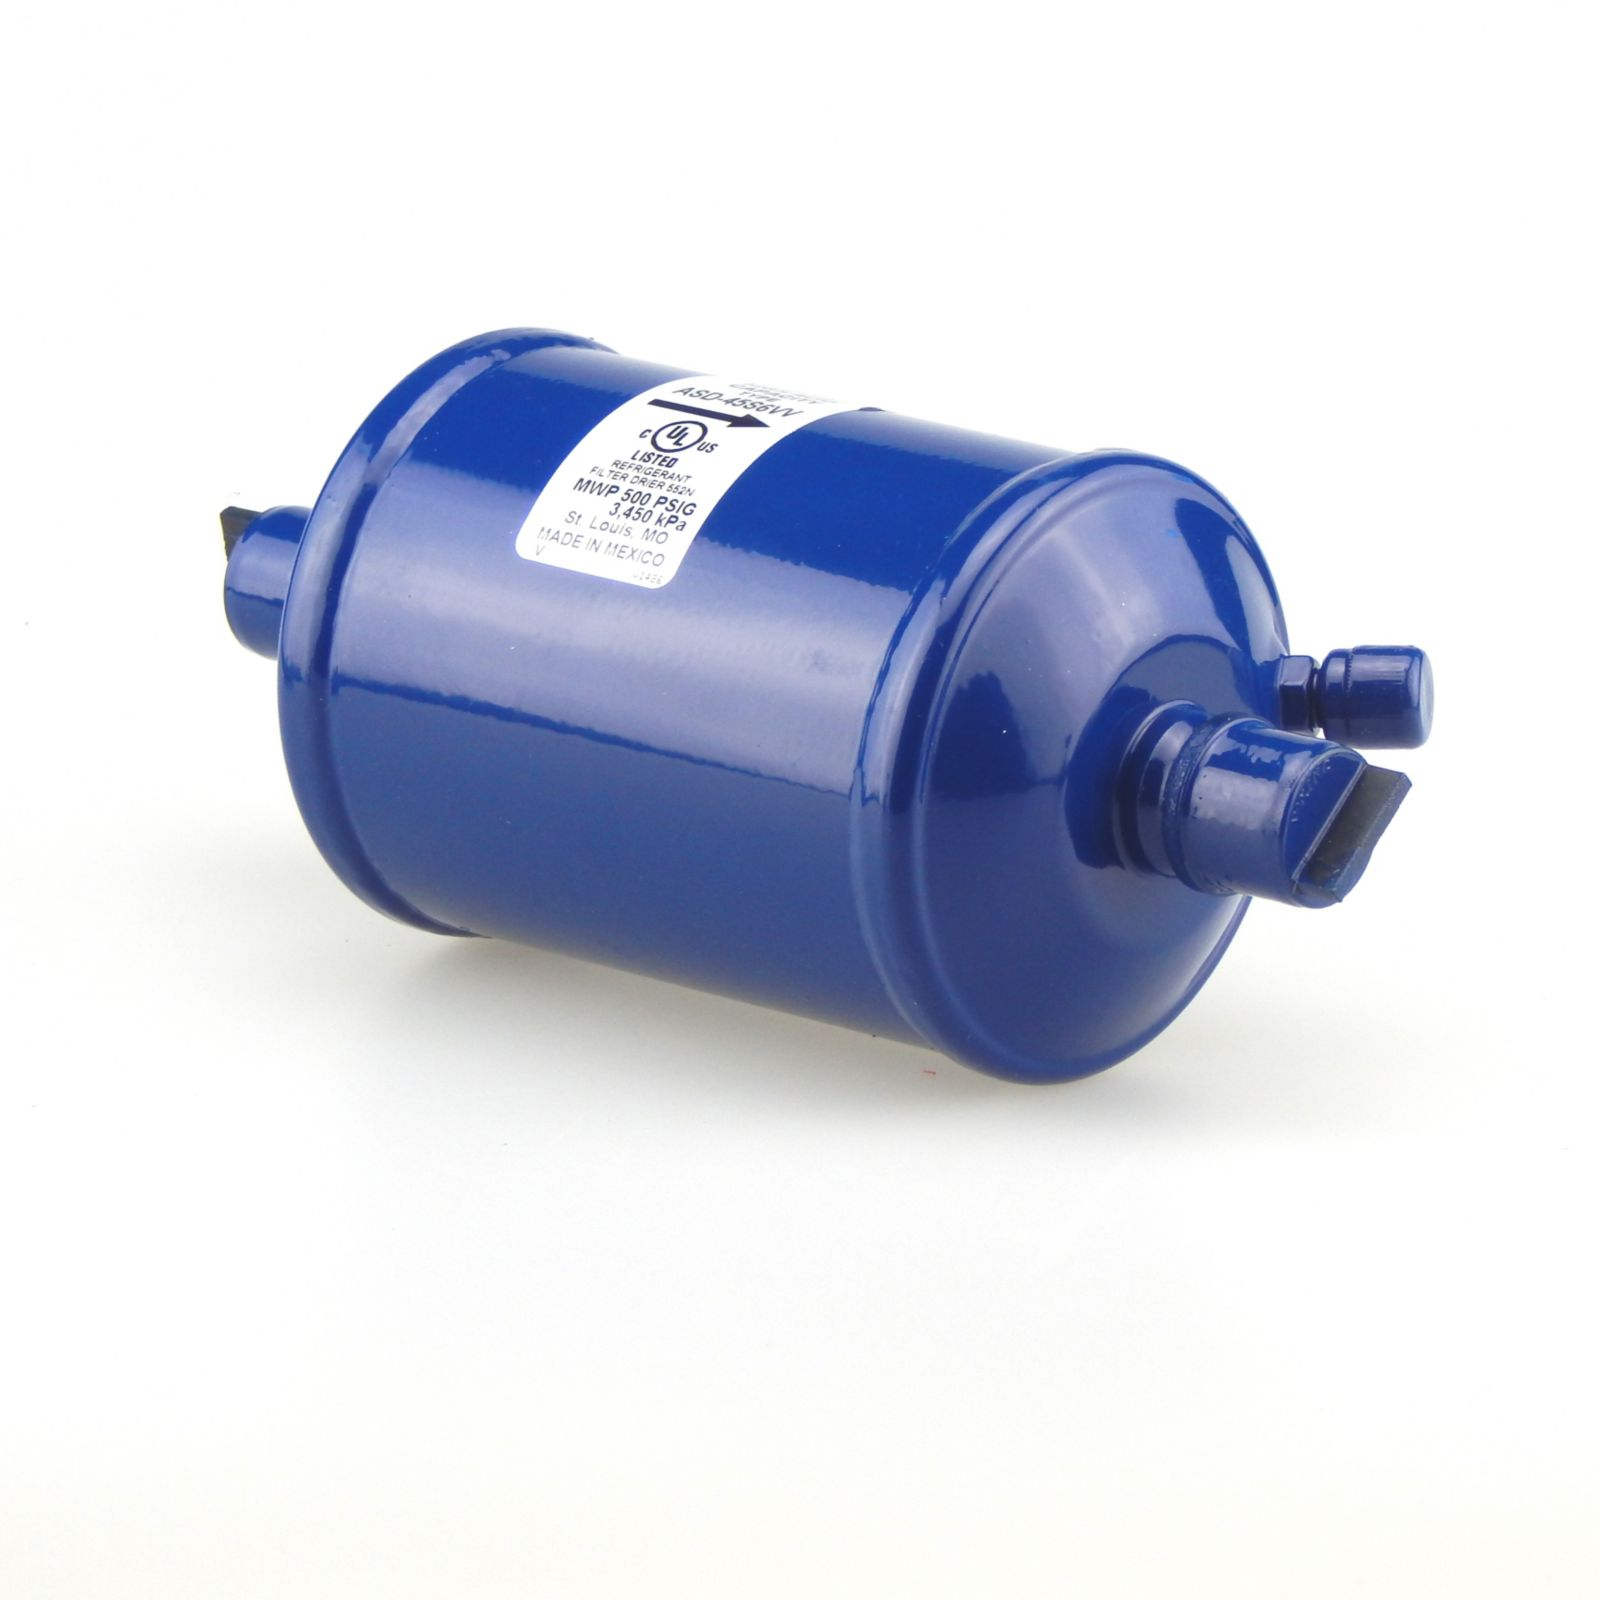 "Emerson 049172 - ASD45S6W Premium Dual Access Suction Line Filter Drier, 45 Cubic Inch, 3/4"" ODF Connection"